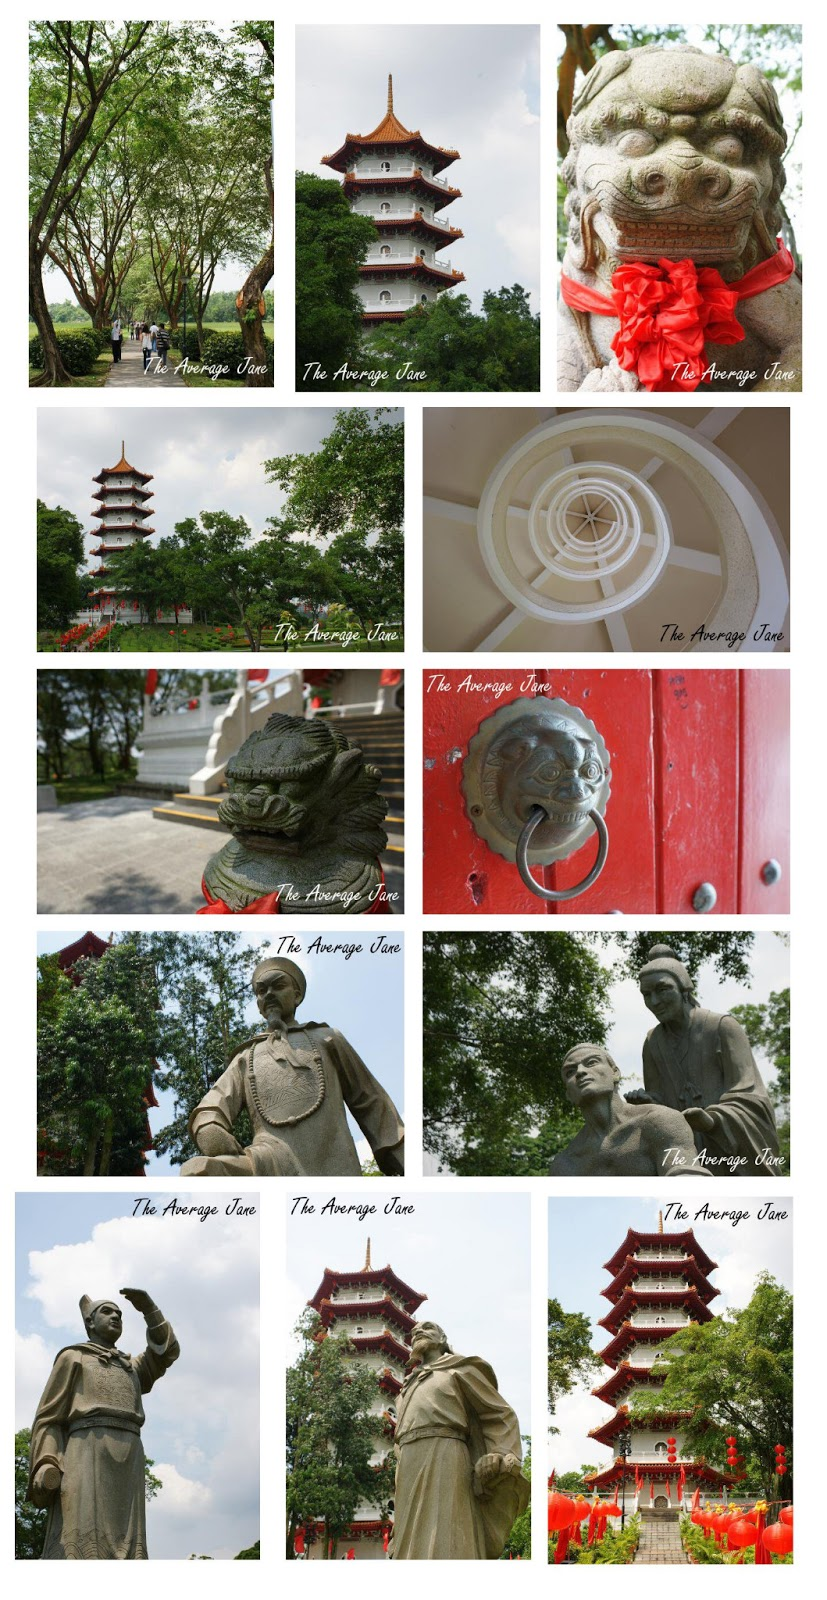 The Average Jane: Chinese And Japanese Gardens In Singapore